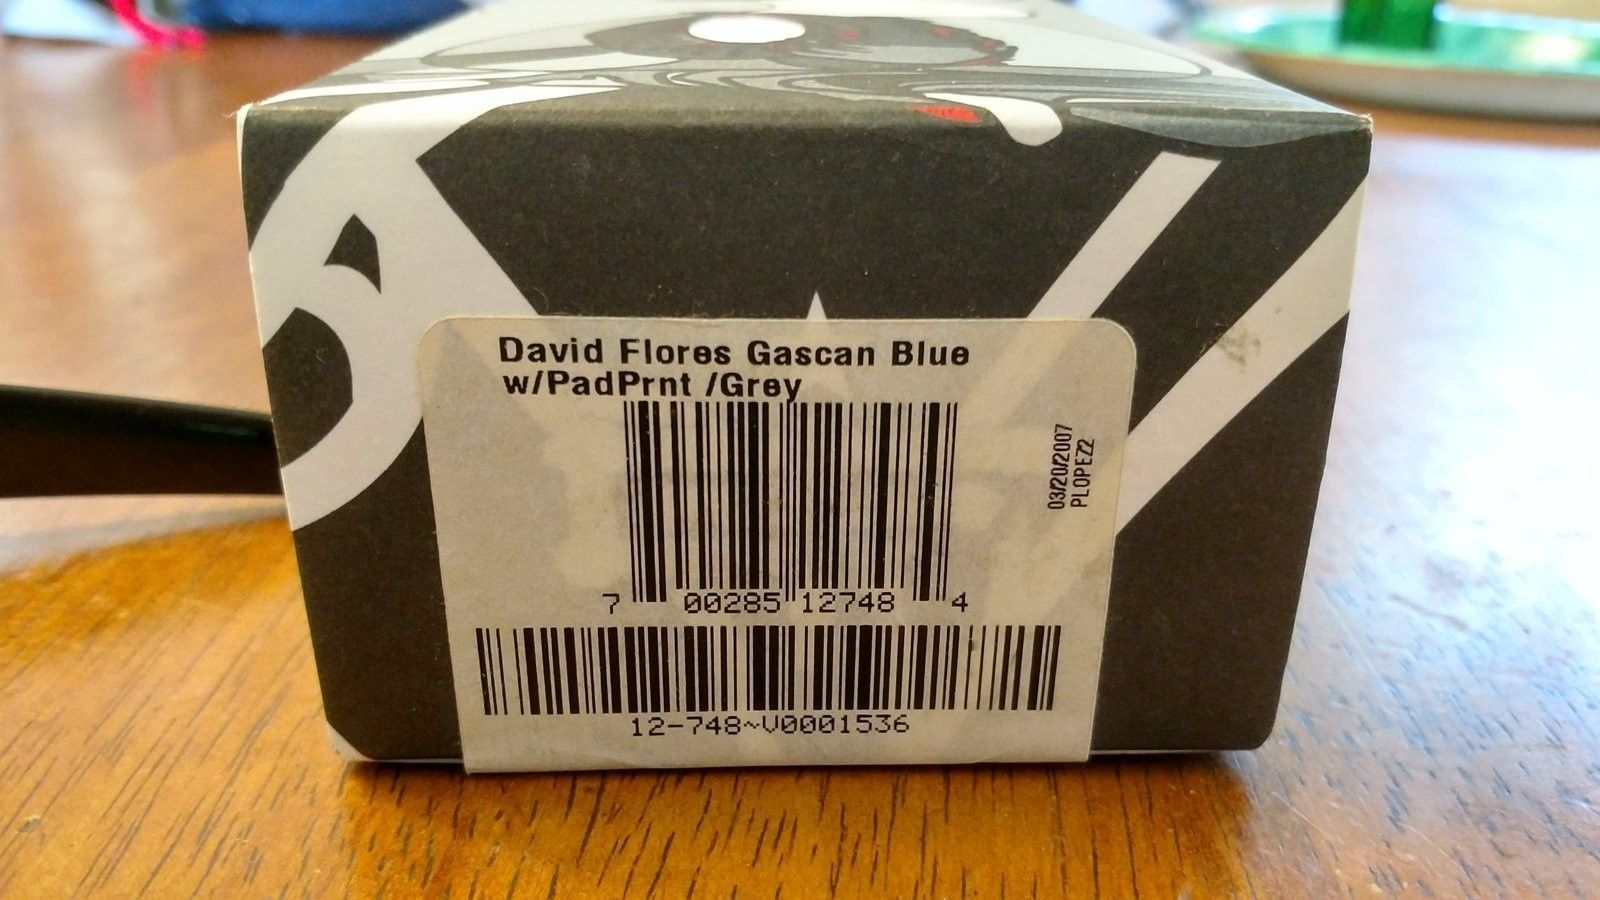 Today Only - BNIB David Flores Gascan Artists Series complete SOLD shipped US - IMG_20160911_115112263_HDR.jpg